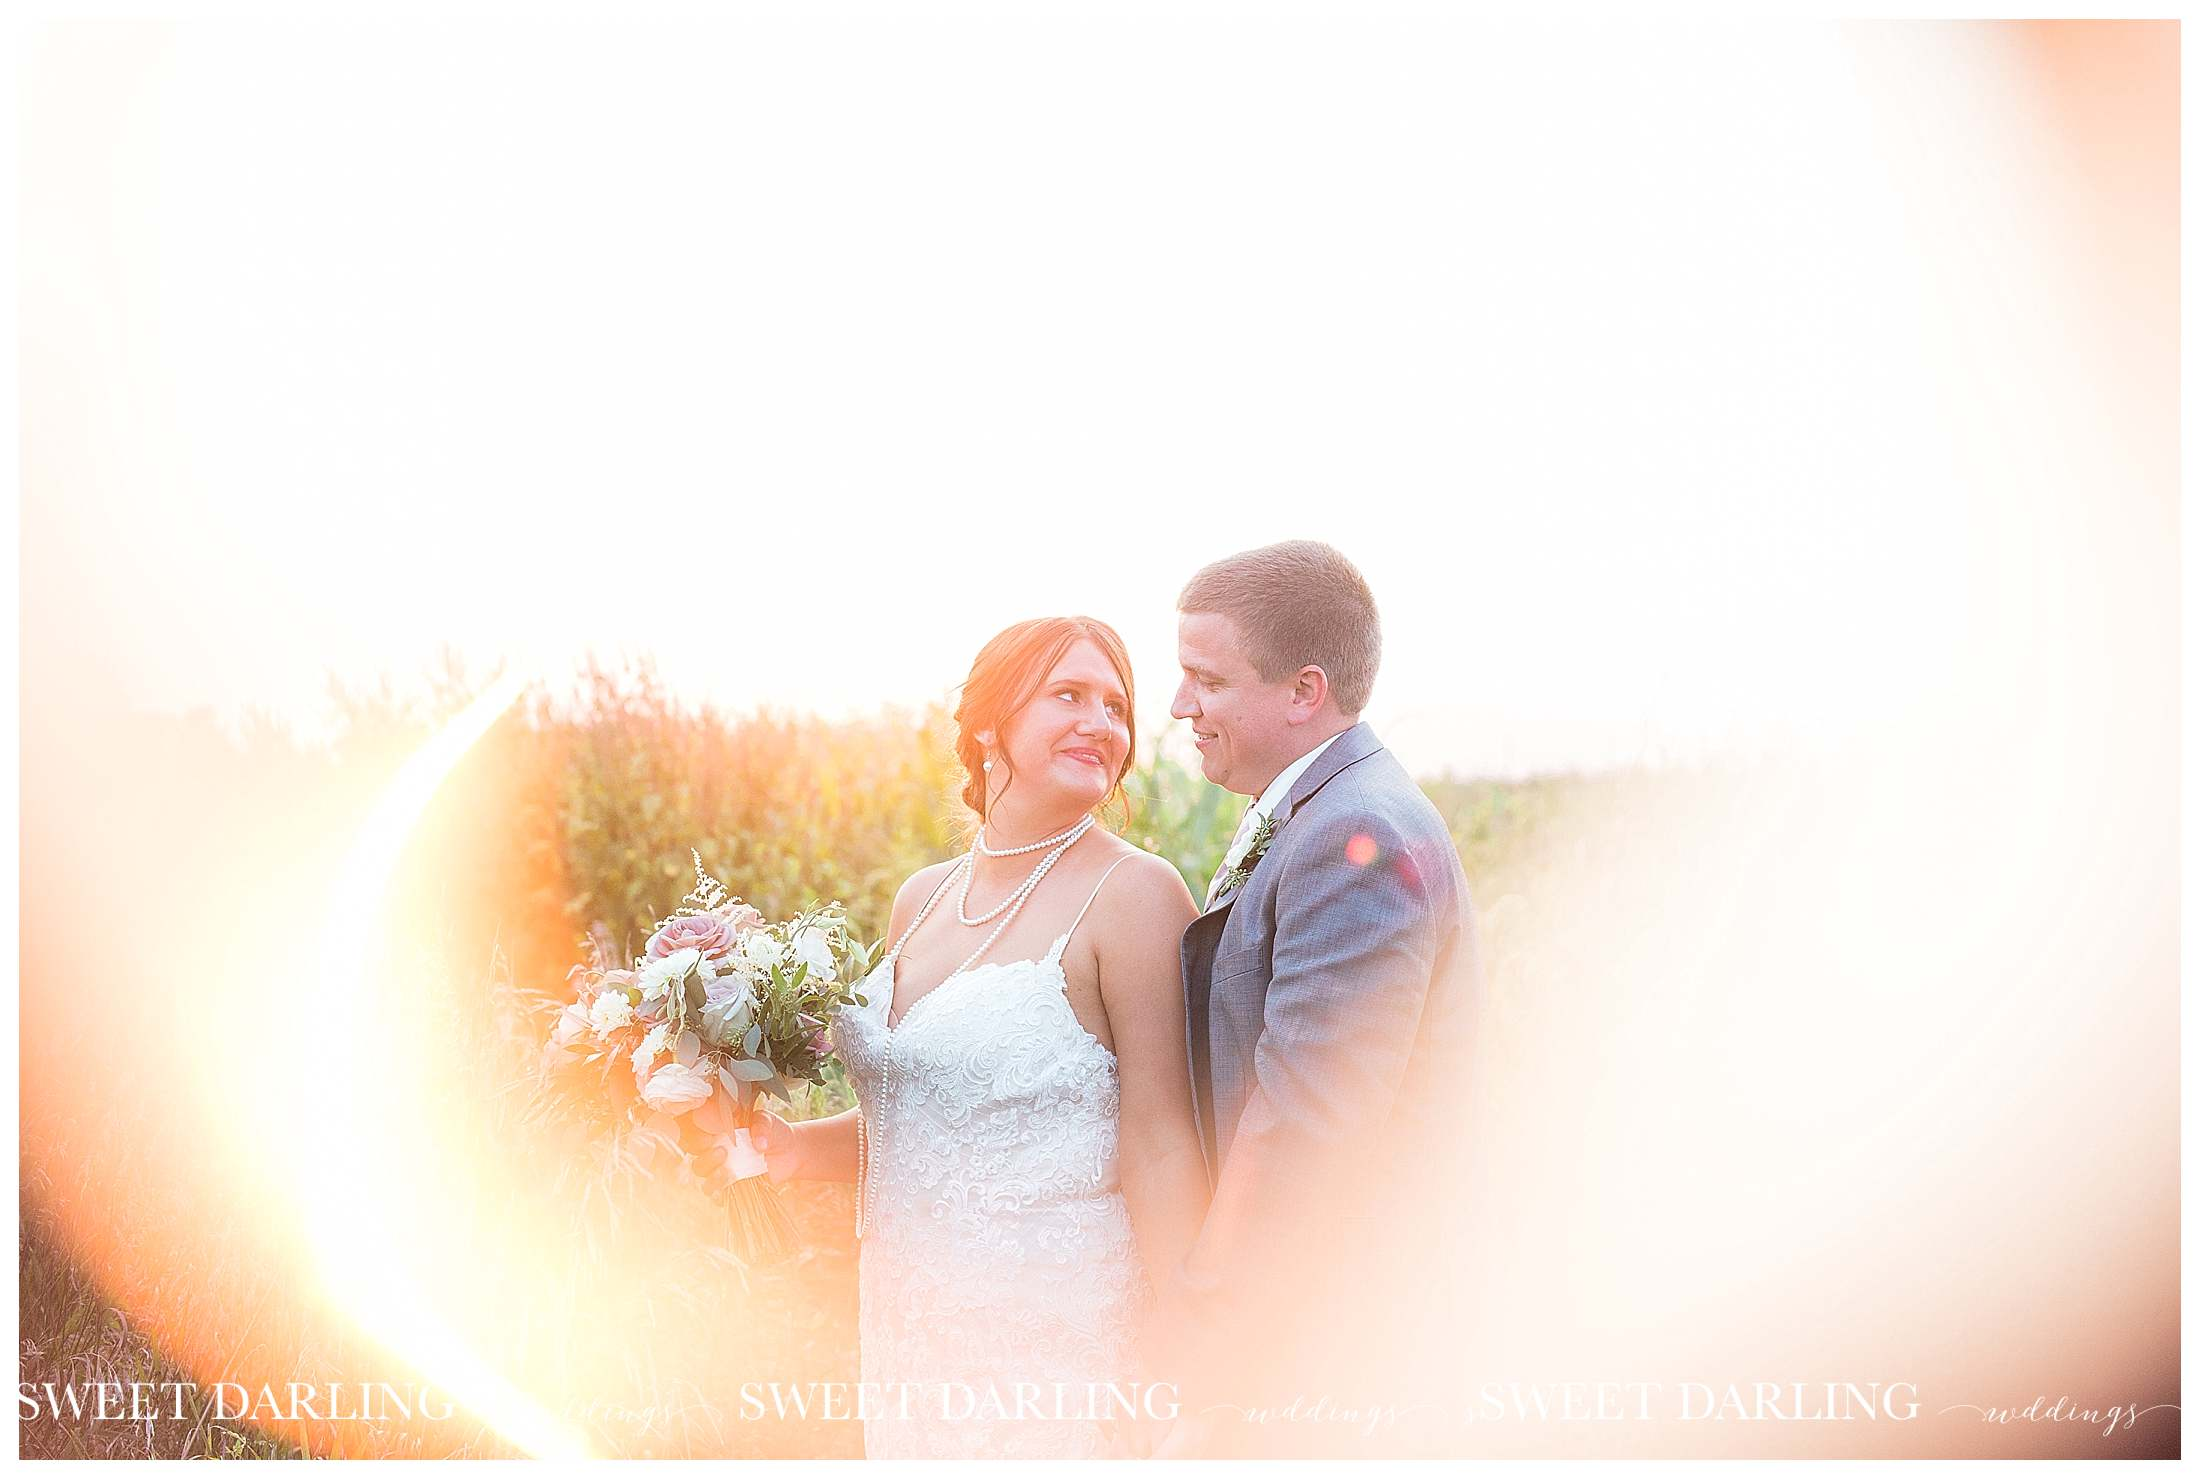 Golden hour bride and groom photos at pear tree estate